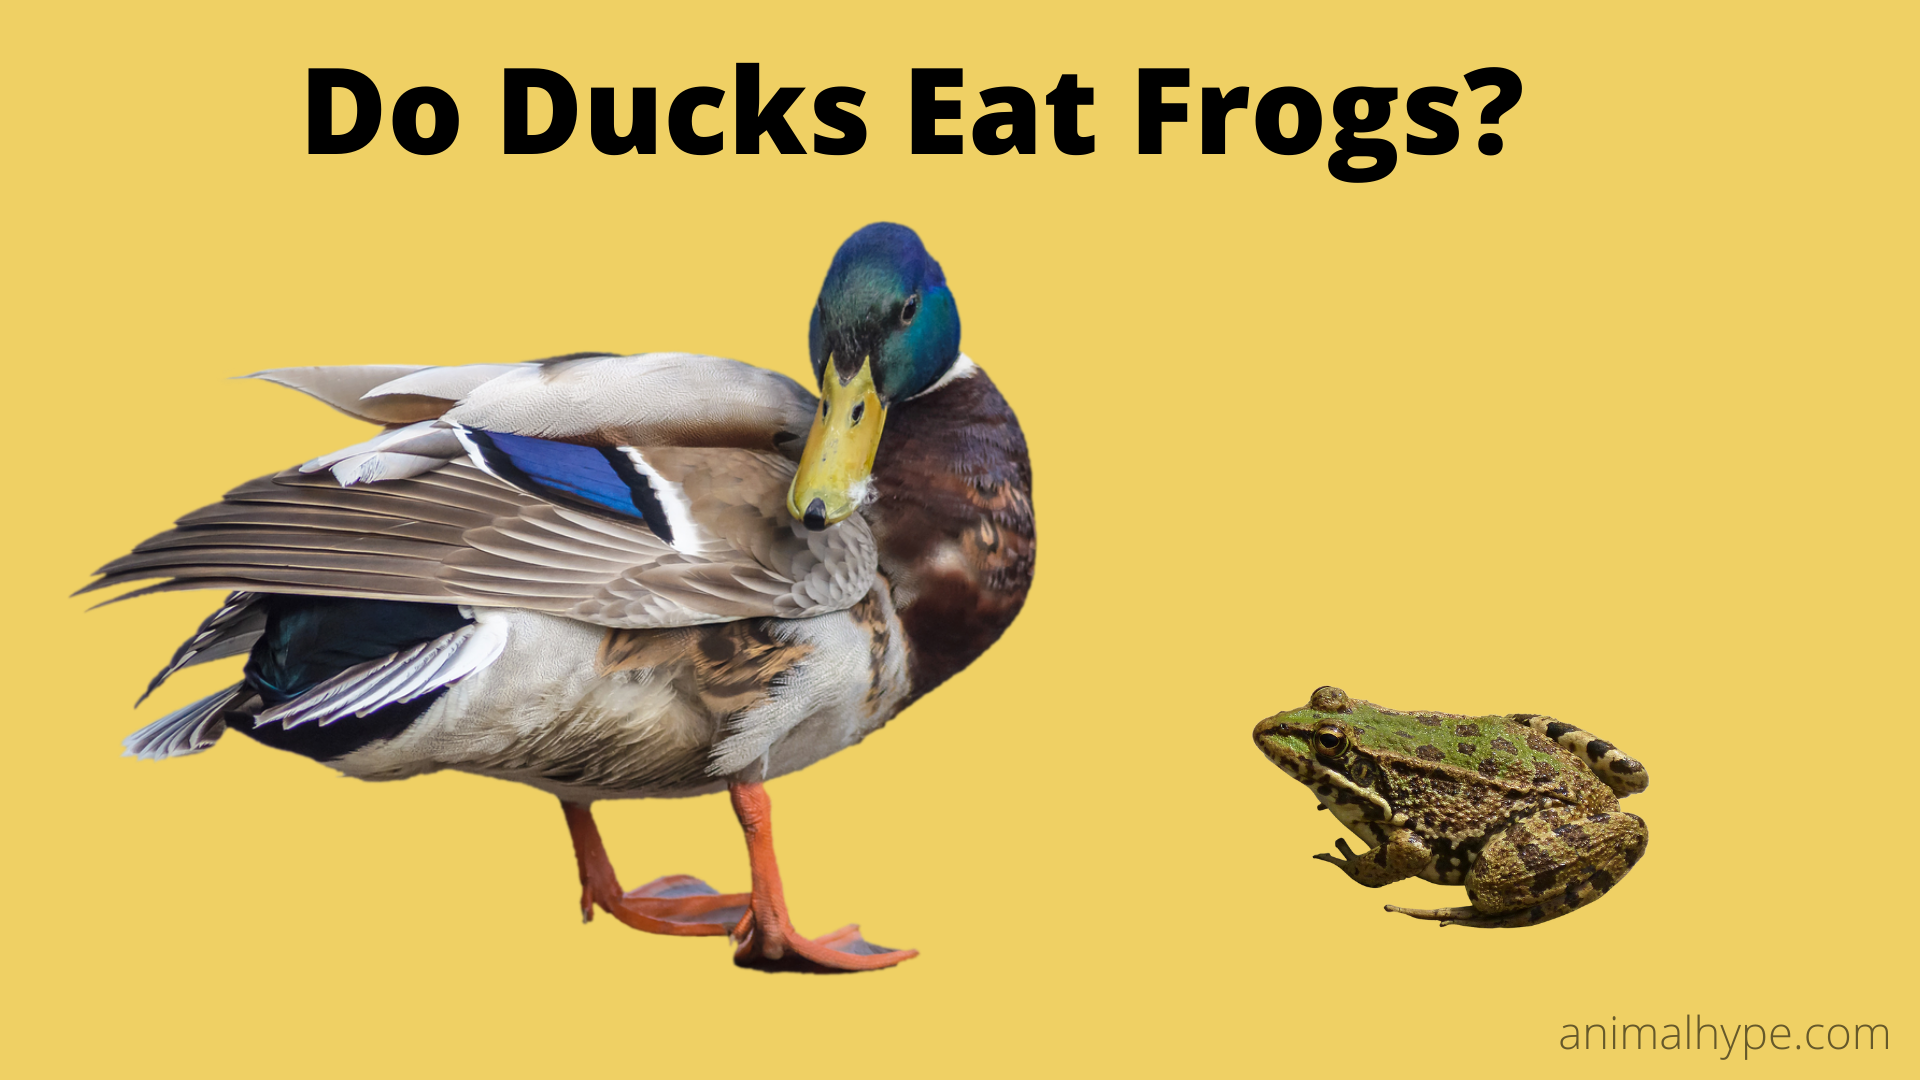 Do Ducks Eat Frogs